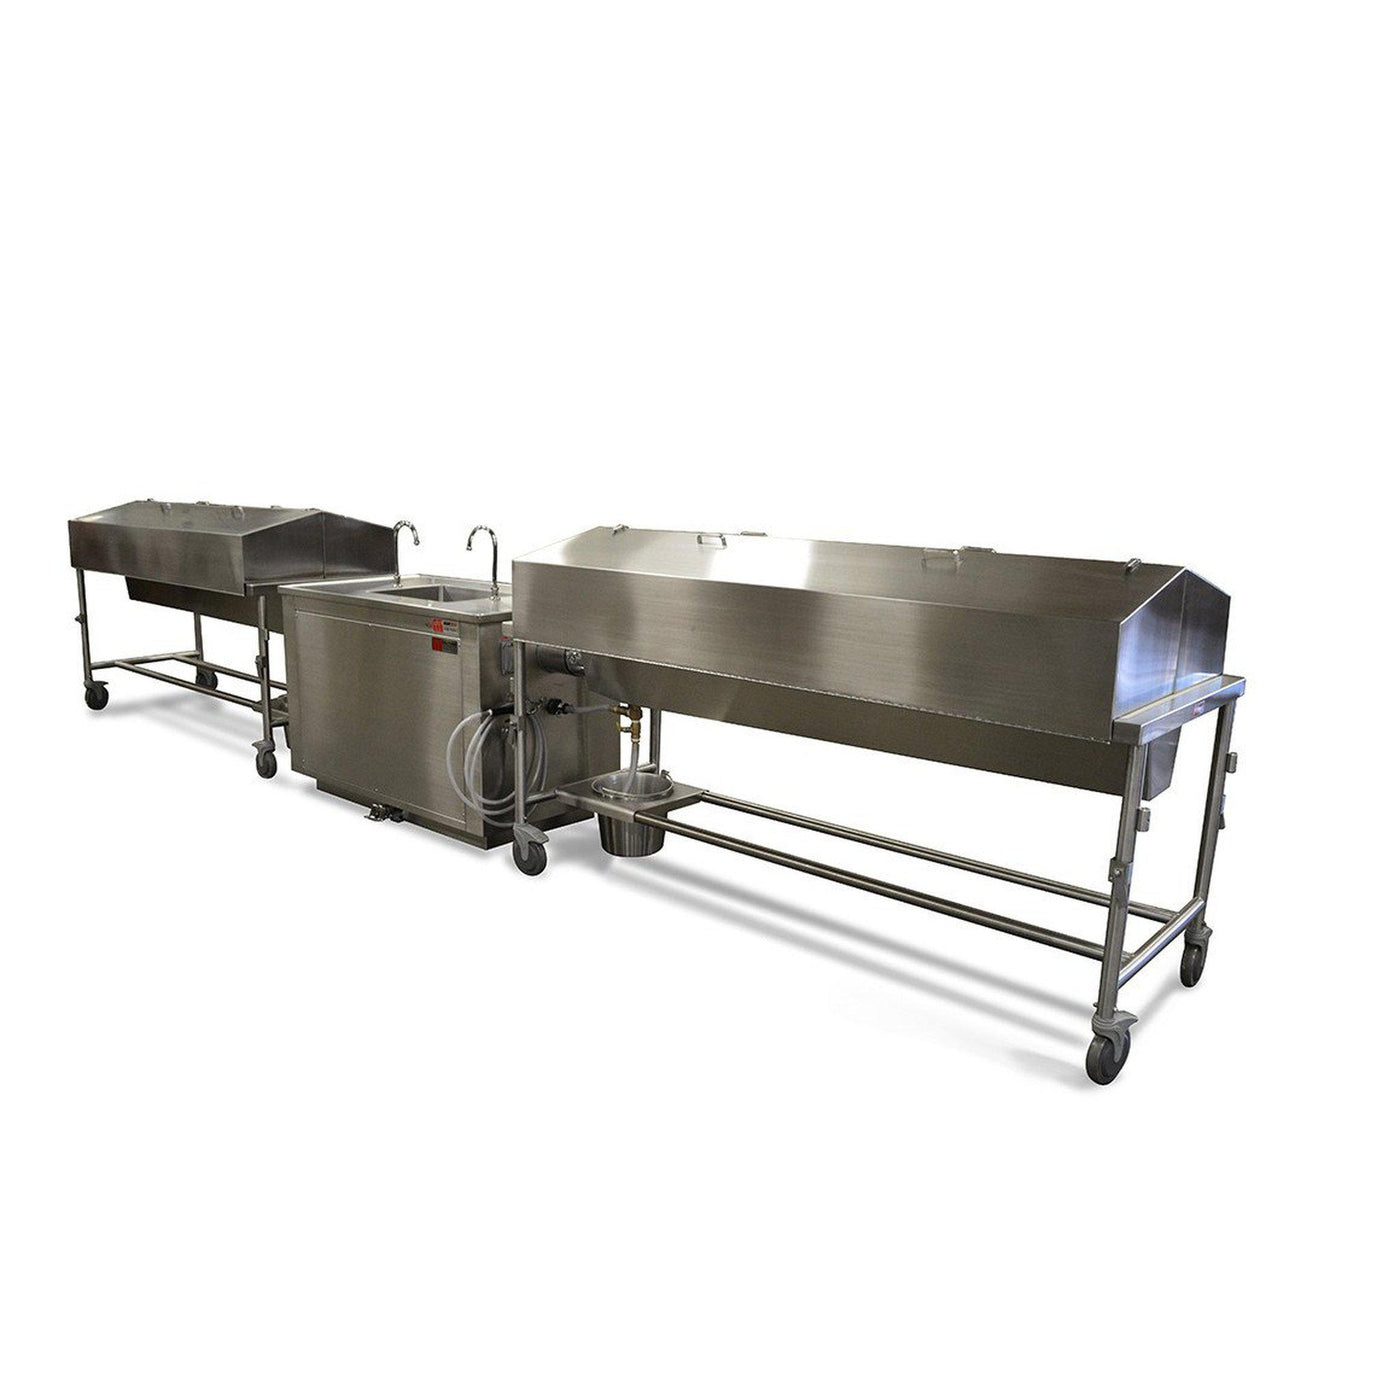 Dissecting Table Docking Station-Anatomy Dissection Tables-Mortech Manufacturing Company Inc. Quality Stainless Steel Autopsy, Morgue, Funeral Home, Necropsy, Veterinary / Anatomy, Dissection Equipment and Accessories